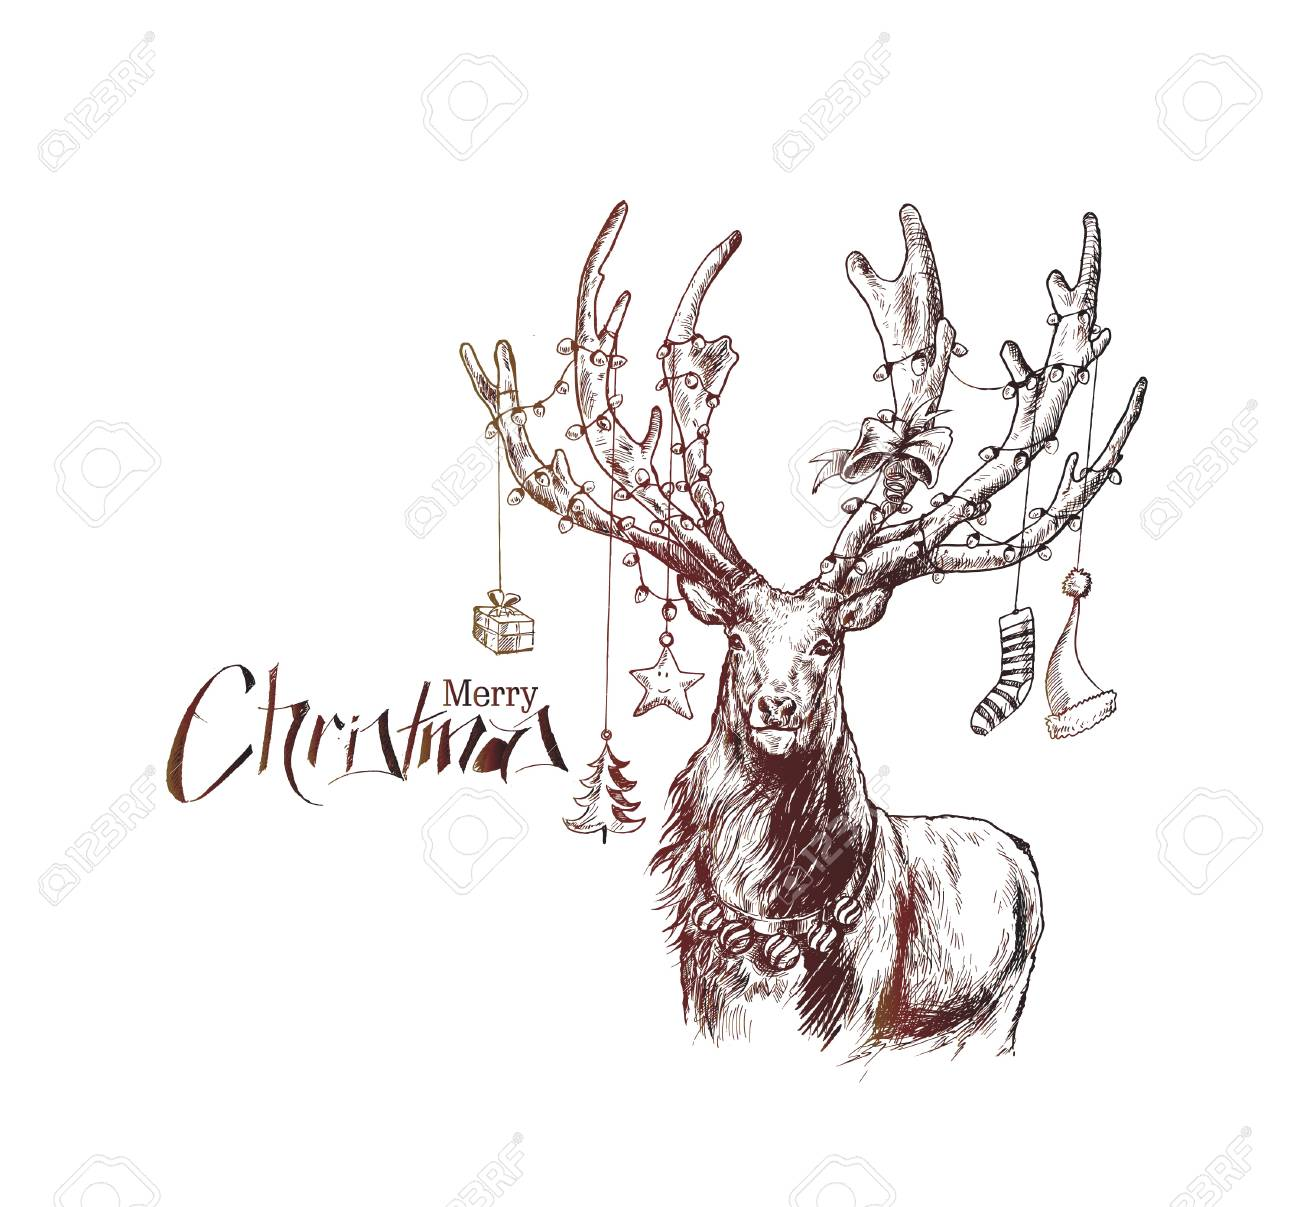 happy christmas cartoon style hand sketchy drawing of reindeer royalty free cliparts vectors and stock illustration image 91726654 happy christmas cartoon style hand sketchy drawing of reindeer